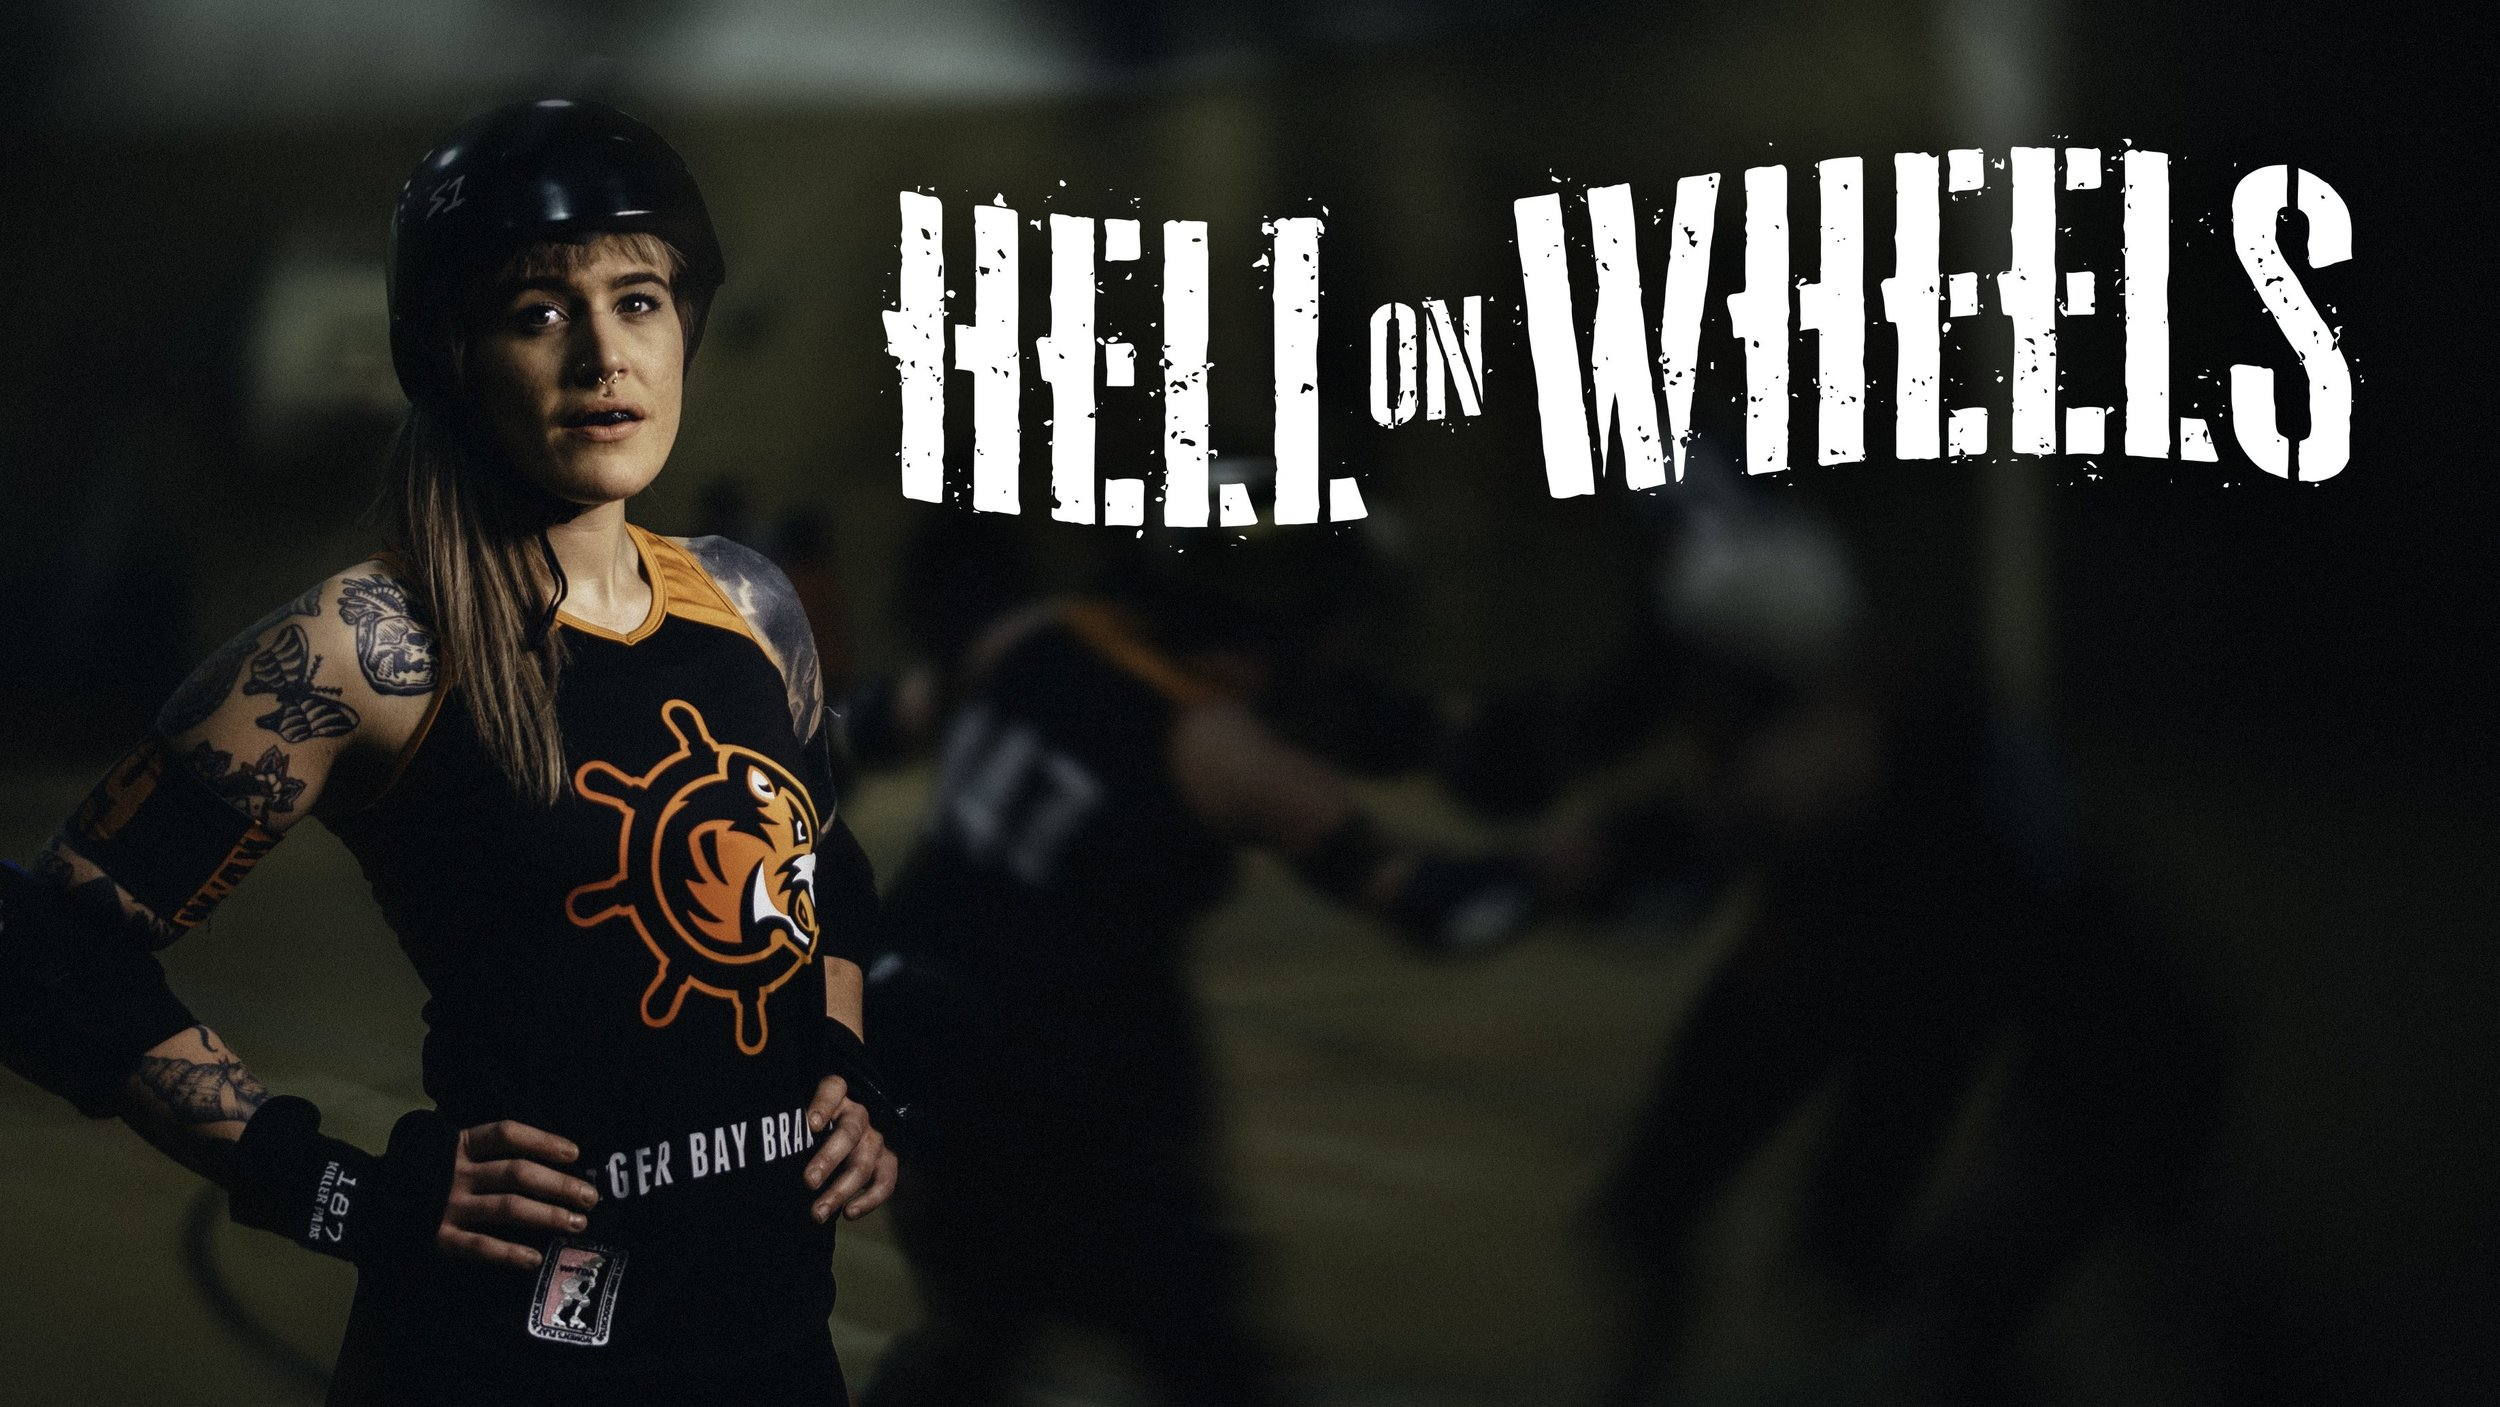 Special Advanced Screening of Hell on Wheels - Director: Toby CameronCommissioned by BBC Wales' as part of their New Directors Scheme, it's a fiercely feminist film about Tiger Bay Brawlers Roller Derby team as they head to their first European tournament. Including QandA with Tiger Bay Brawlers.Invitation only. Contact walesdocfilmfest@gmail.com for more information.